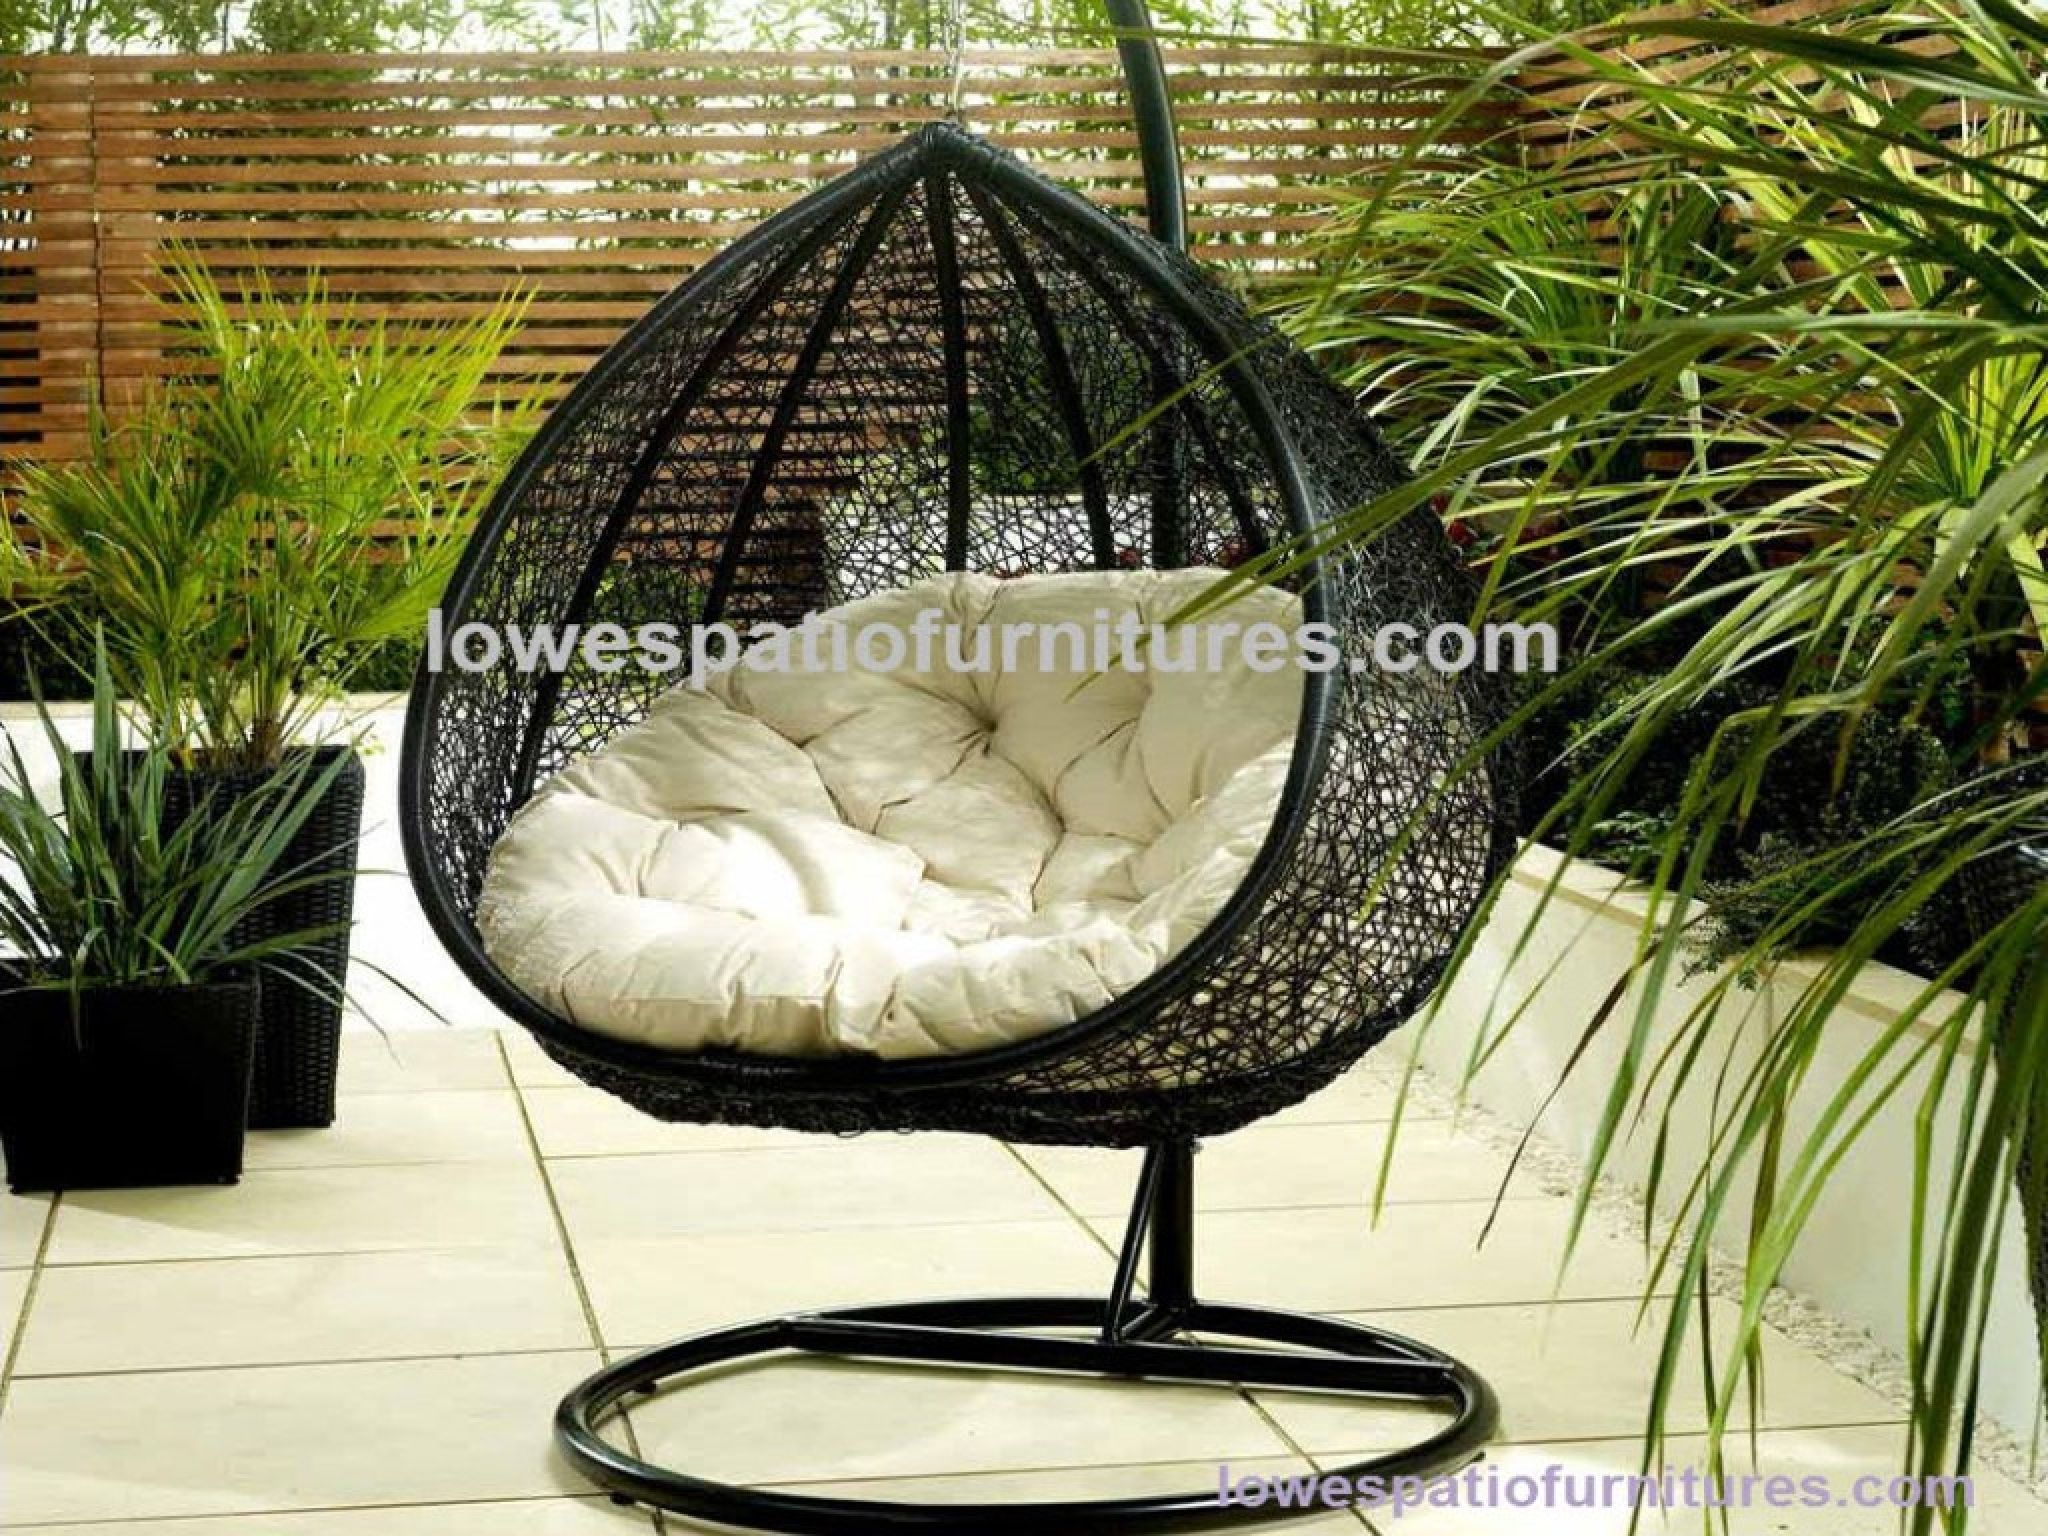 Wonderful Lowes Outdoor Furniture Clearance   Most Popular Interior Paint Colors  Check More At Http:/